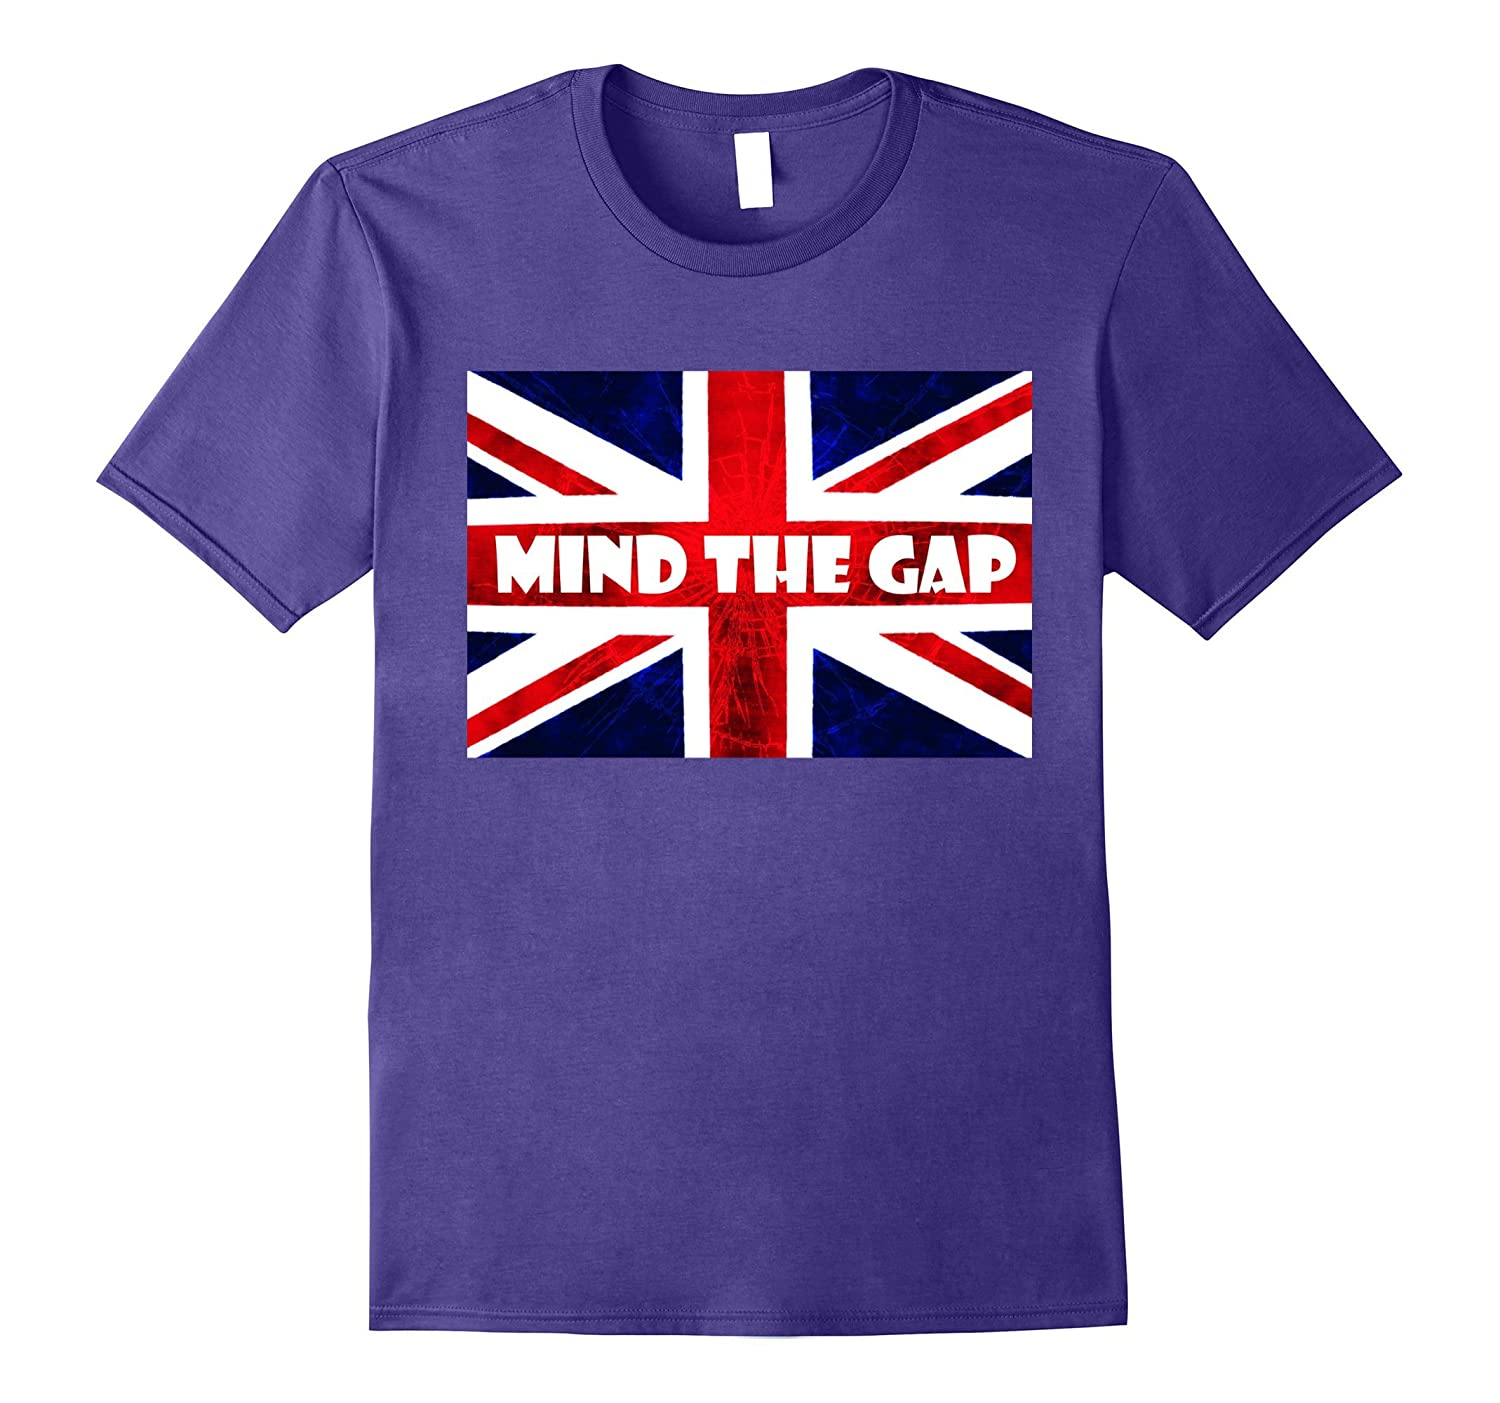 London T-Shirt - Mind The Gap UK British London Tshirts-CD